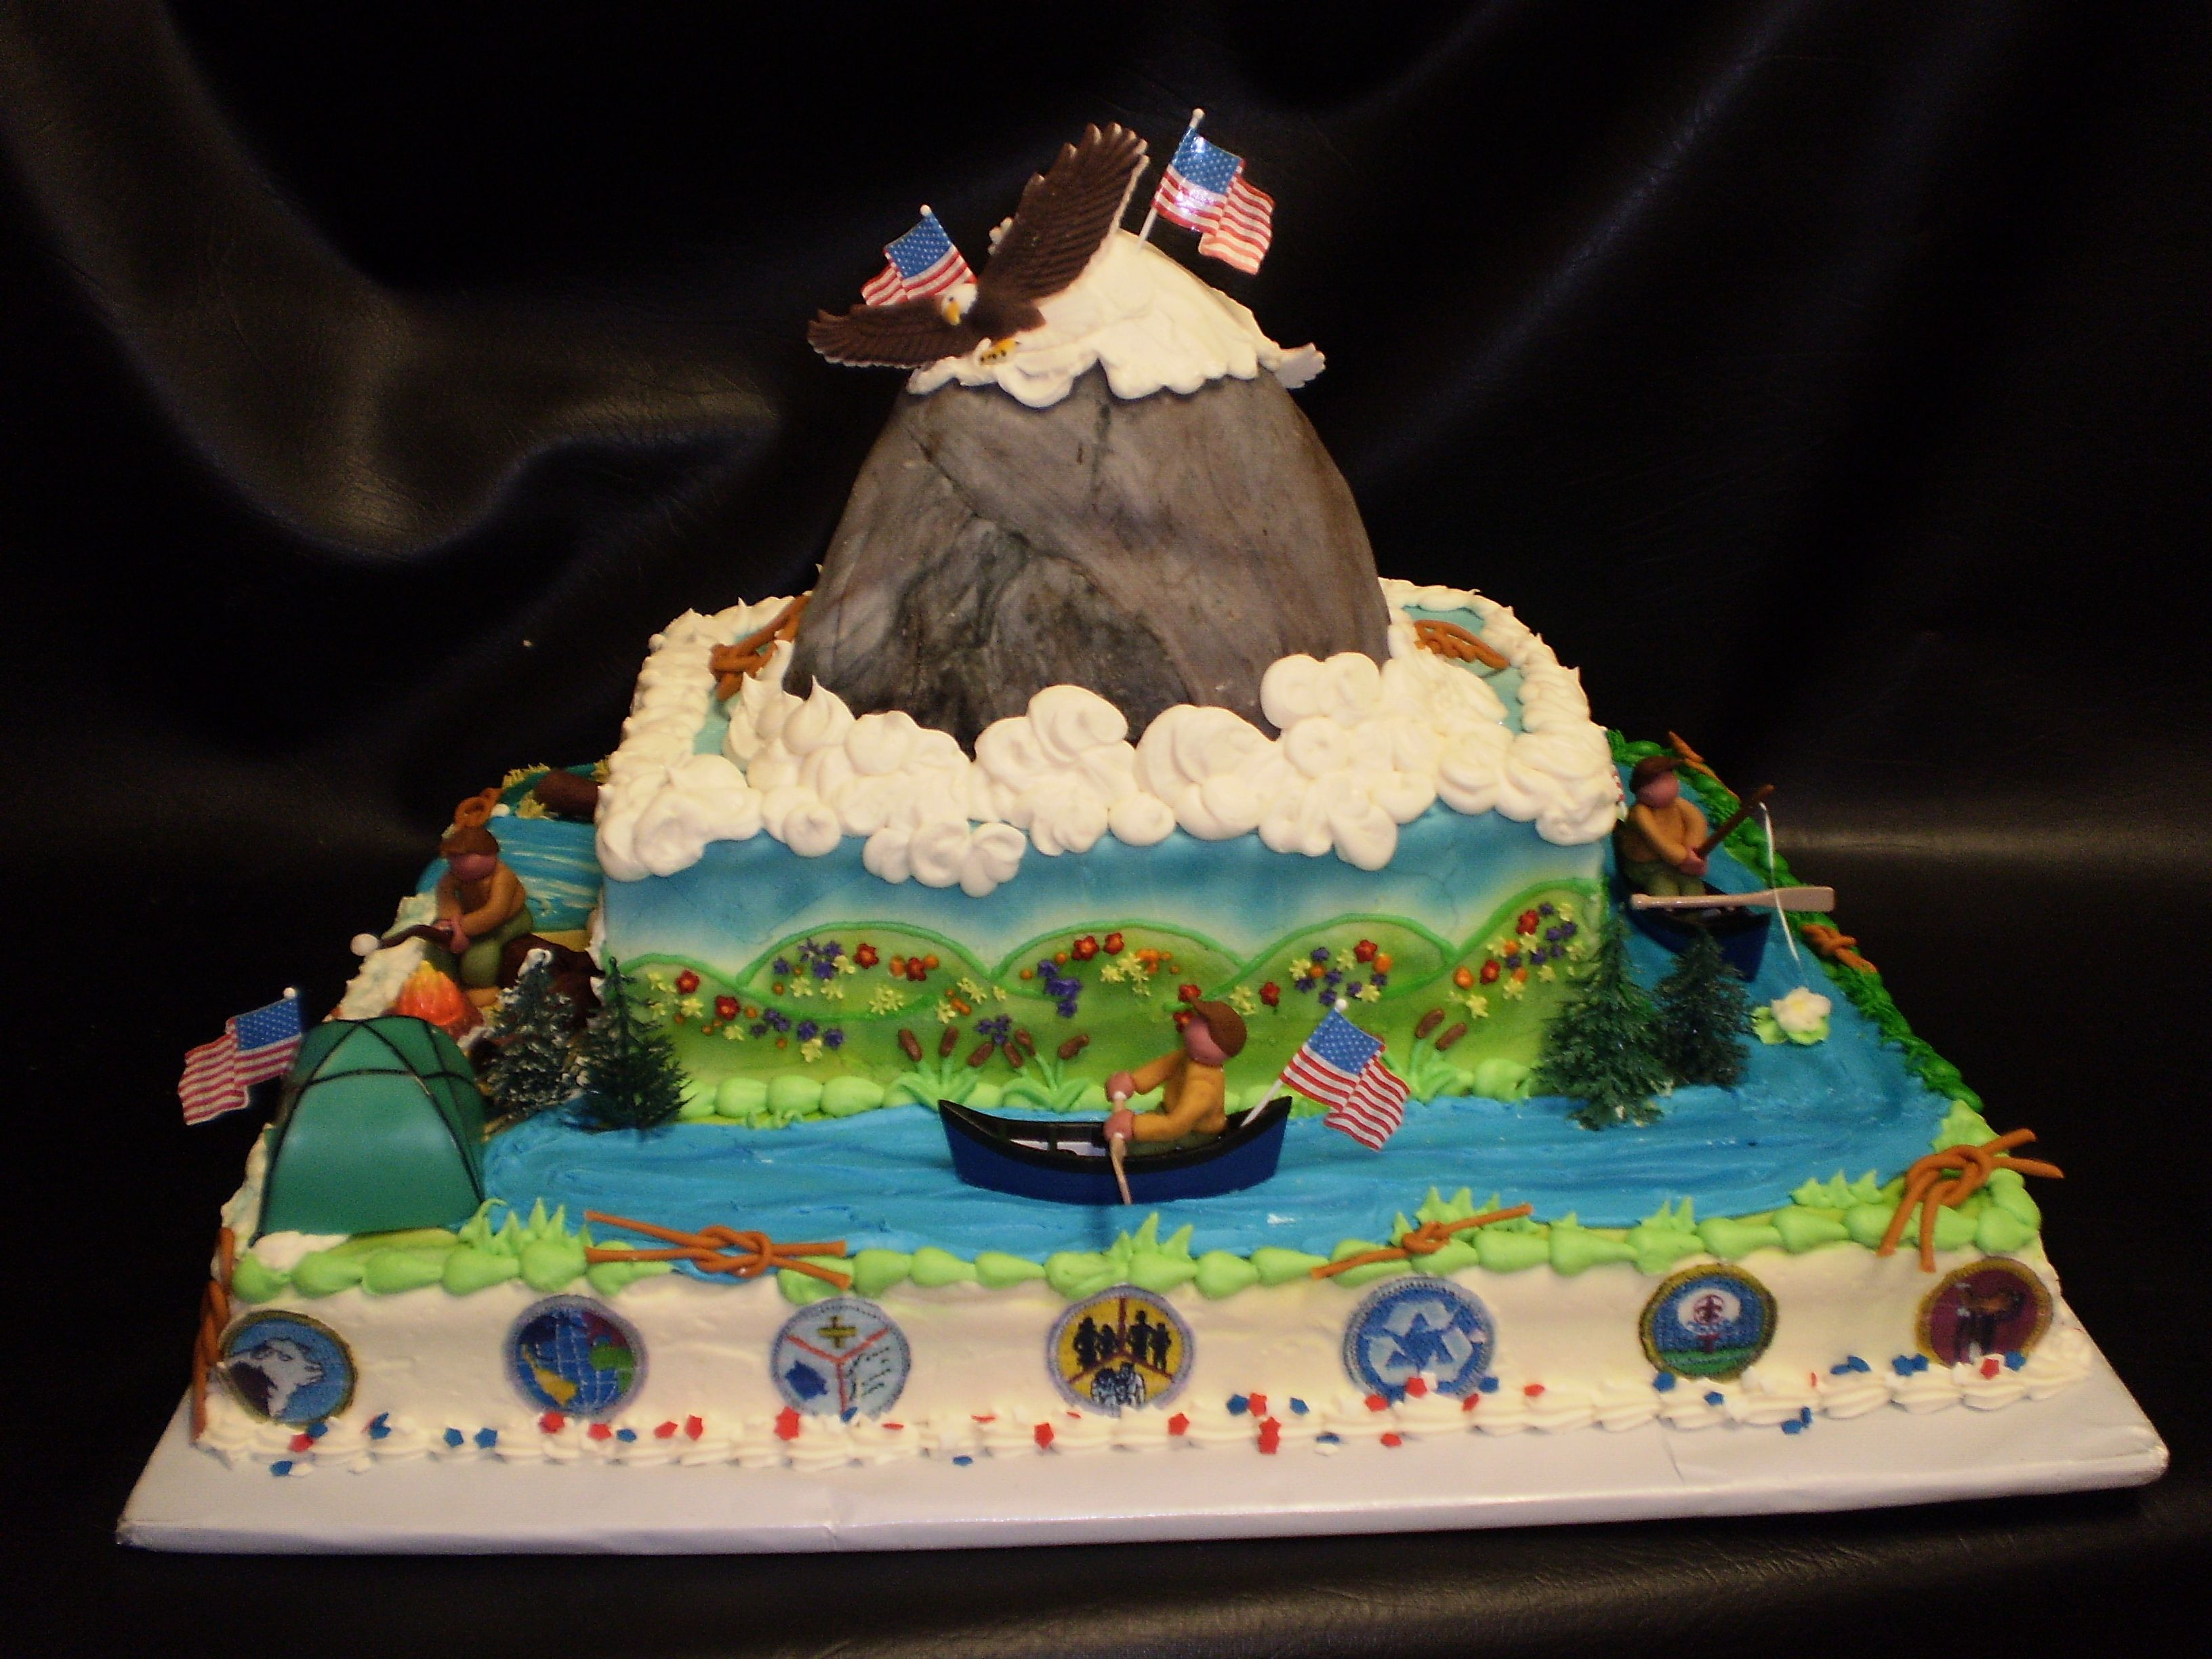 Cake Decorating For Boy Scouts : Eagle Scout Edible Cake Decoration Httpwwwebaycomitmboy ...